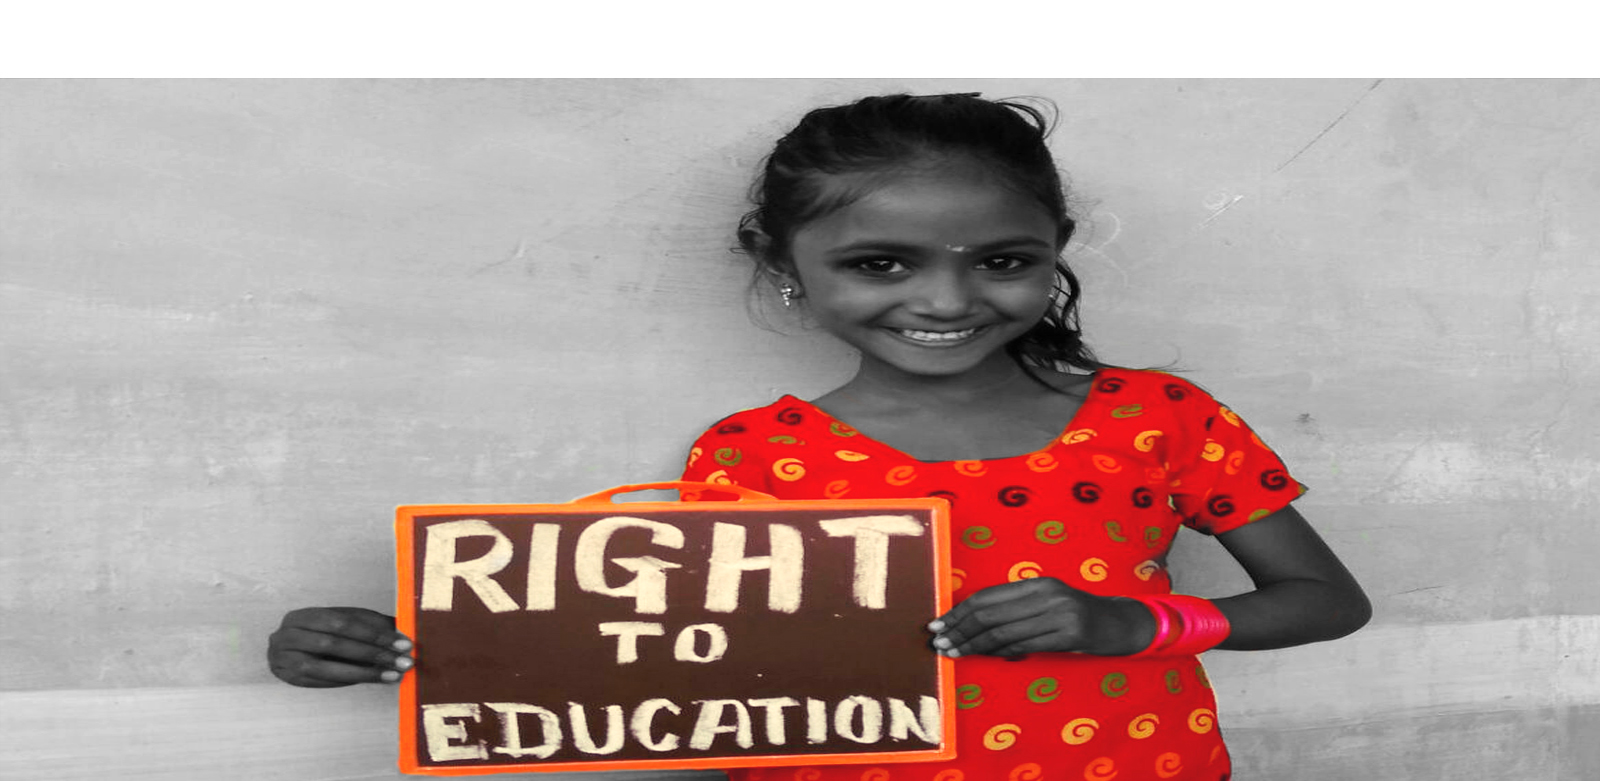 Girls Right To Education